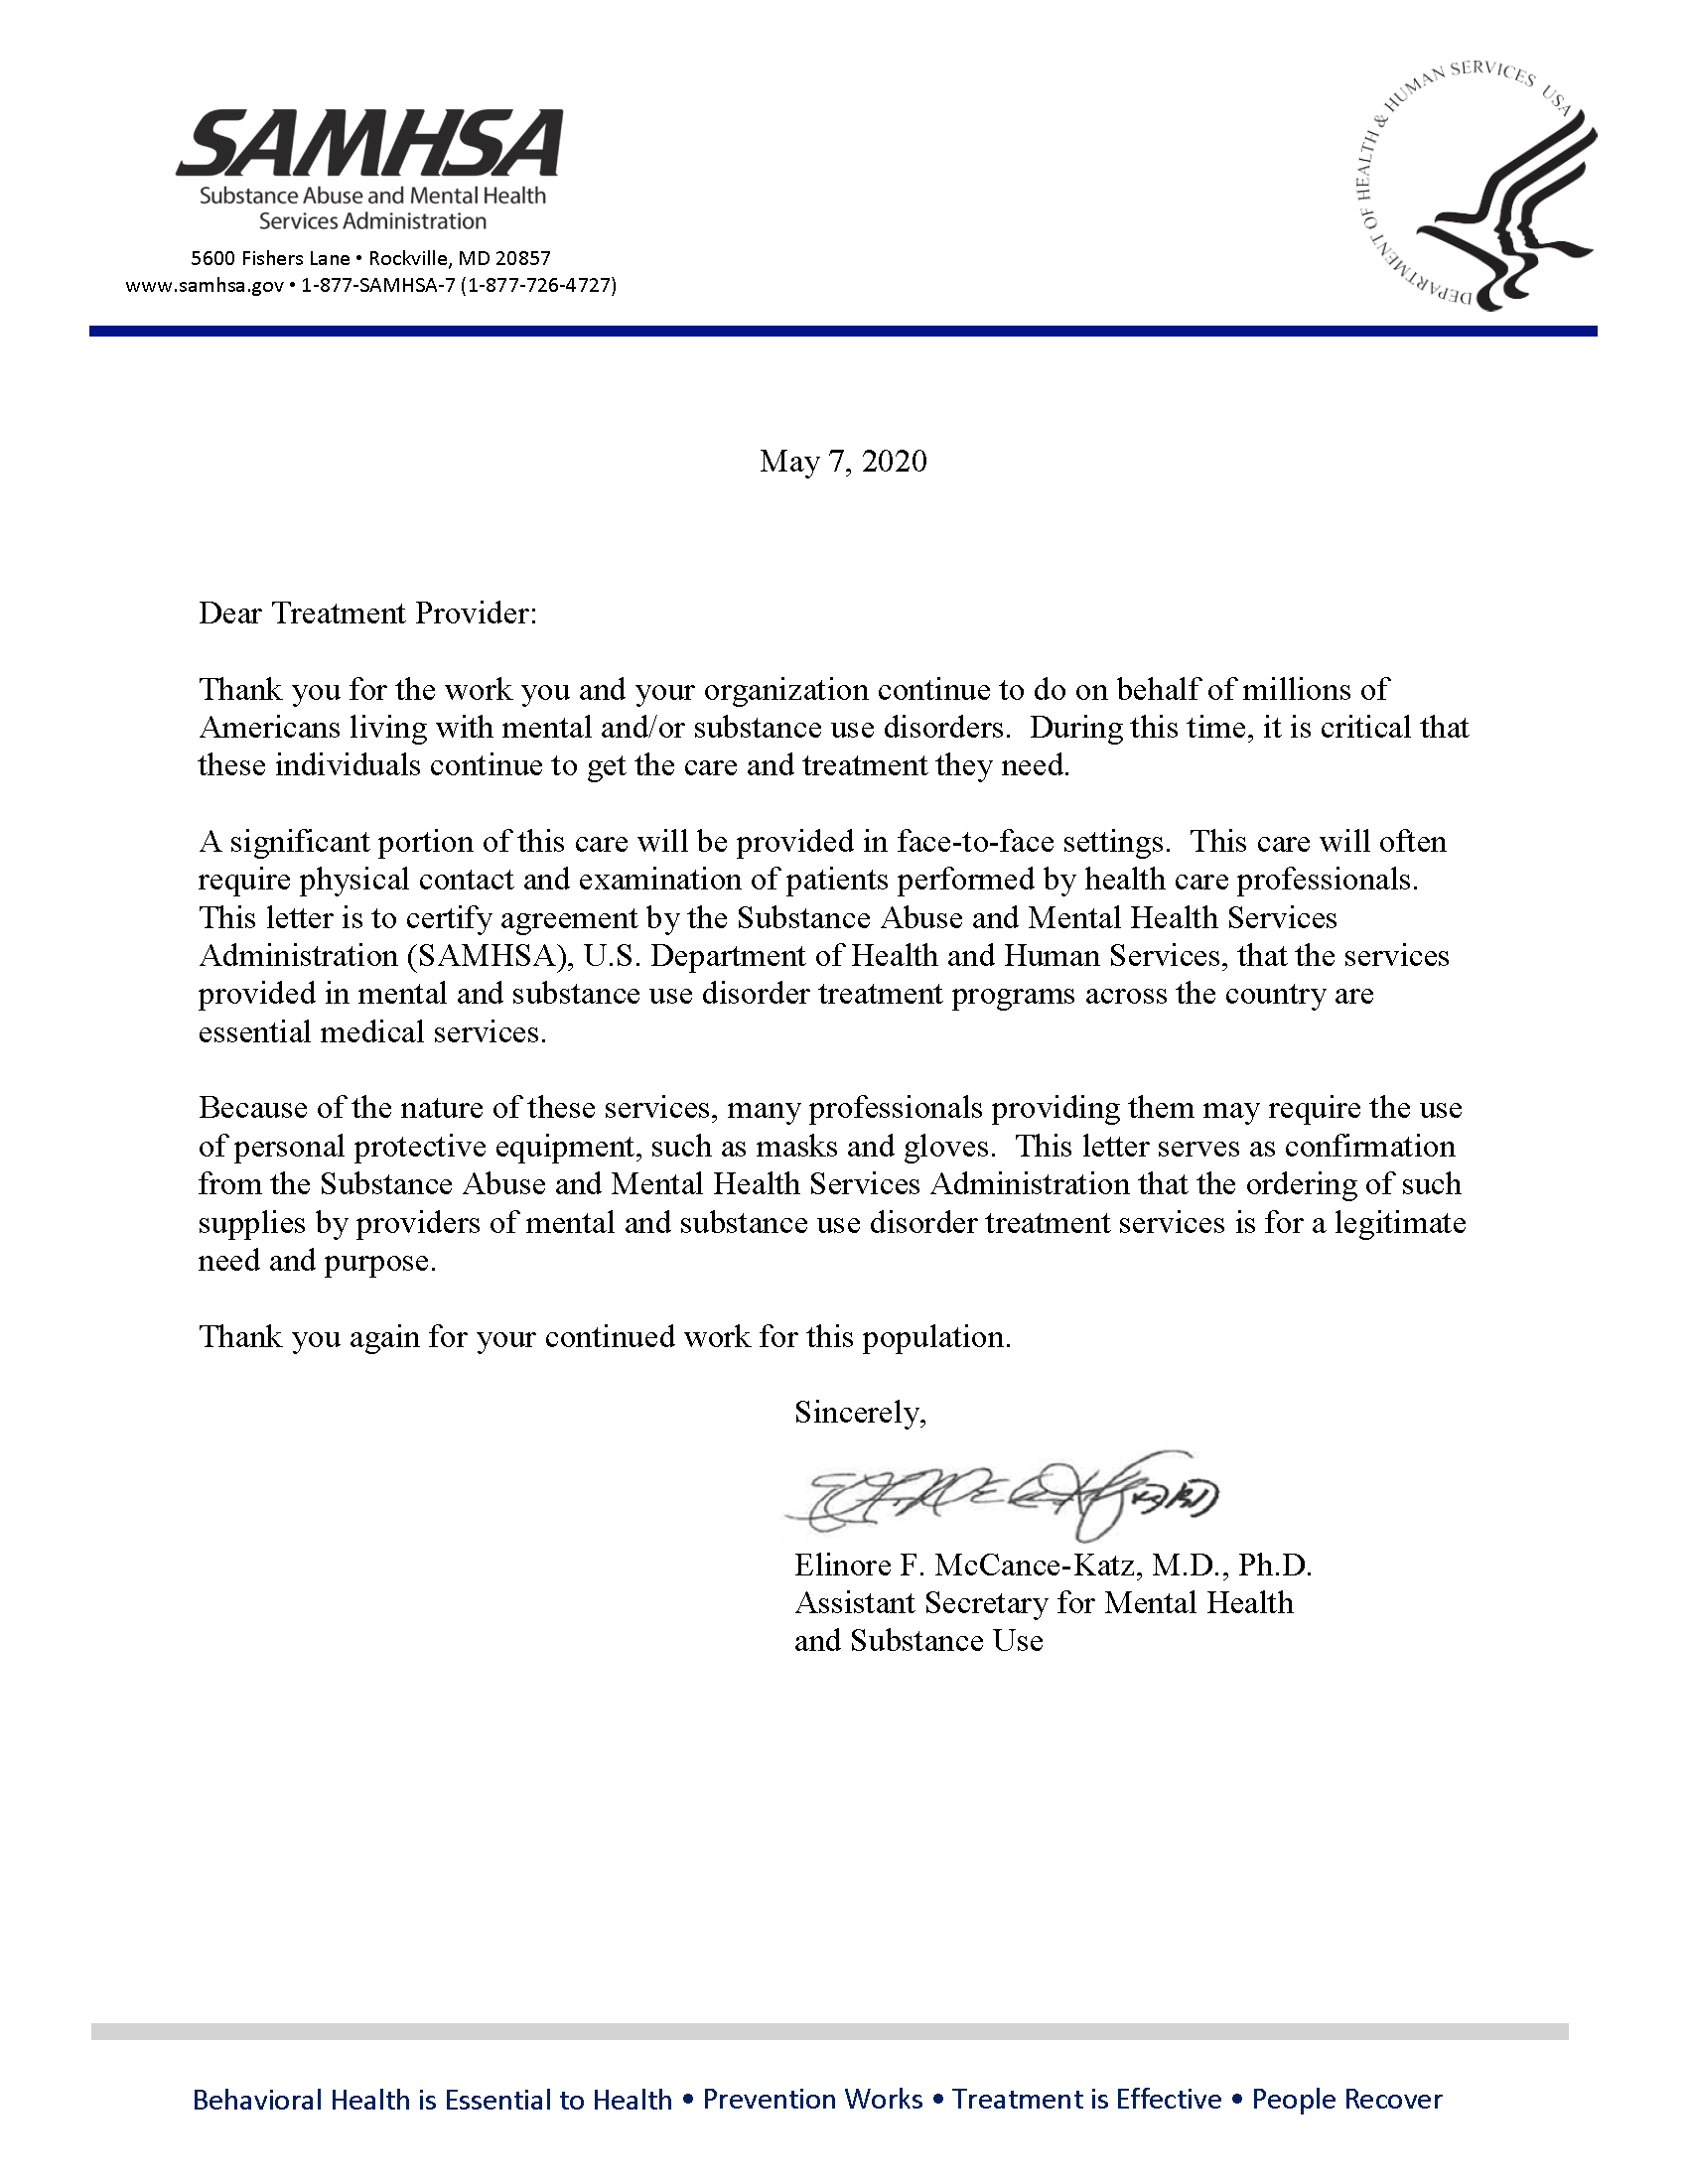 Letter from Assistant Secretary for Mental Health and Substance Use to treatment providers to thank them for their service and to certify their work is considered essential